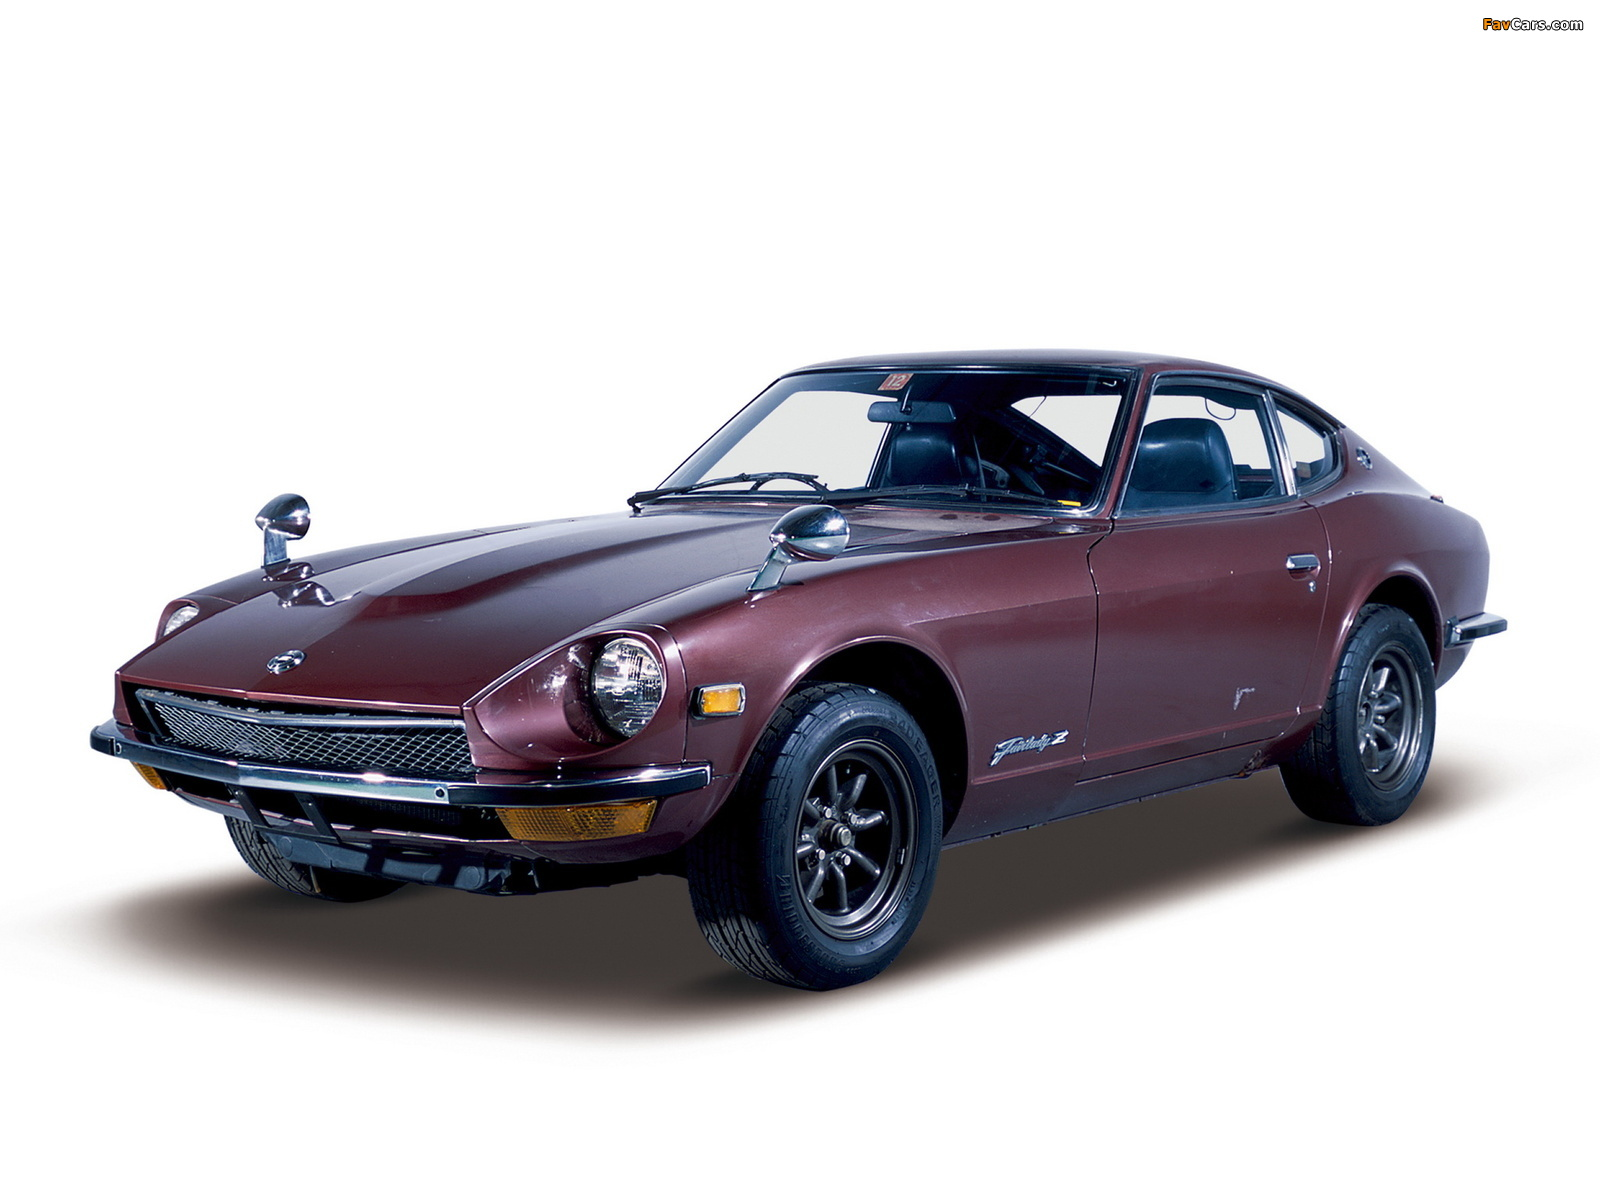 Nissan fairlady photo - 1